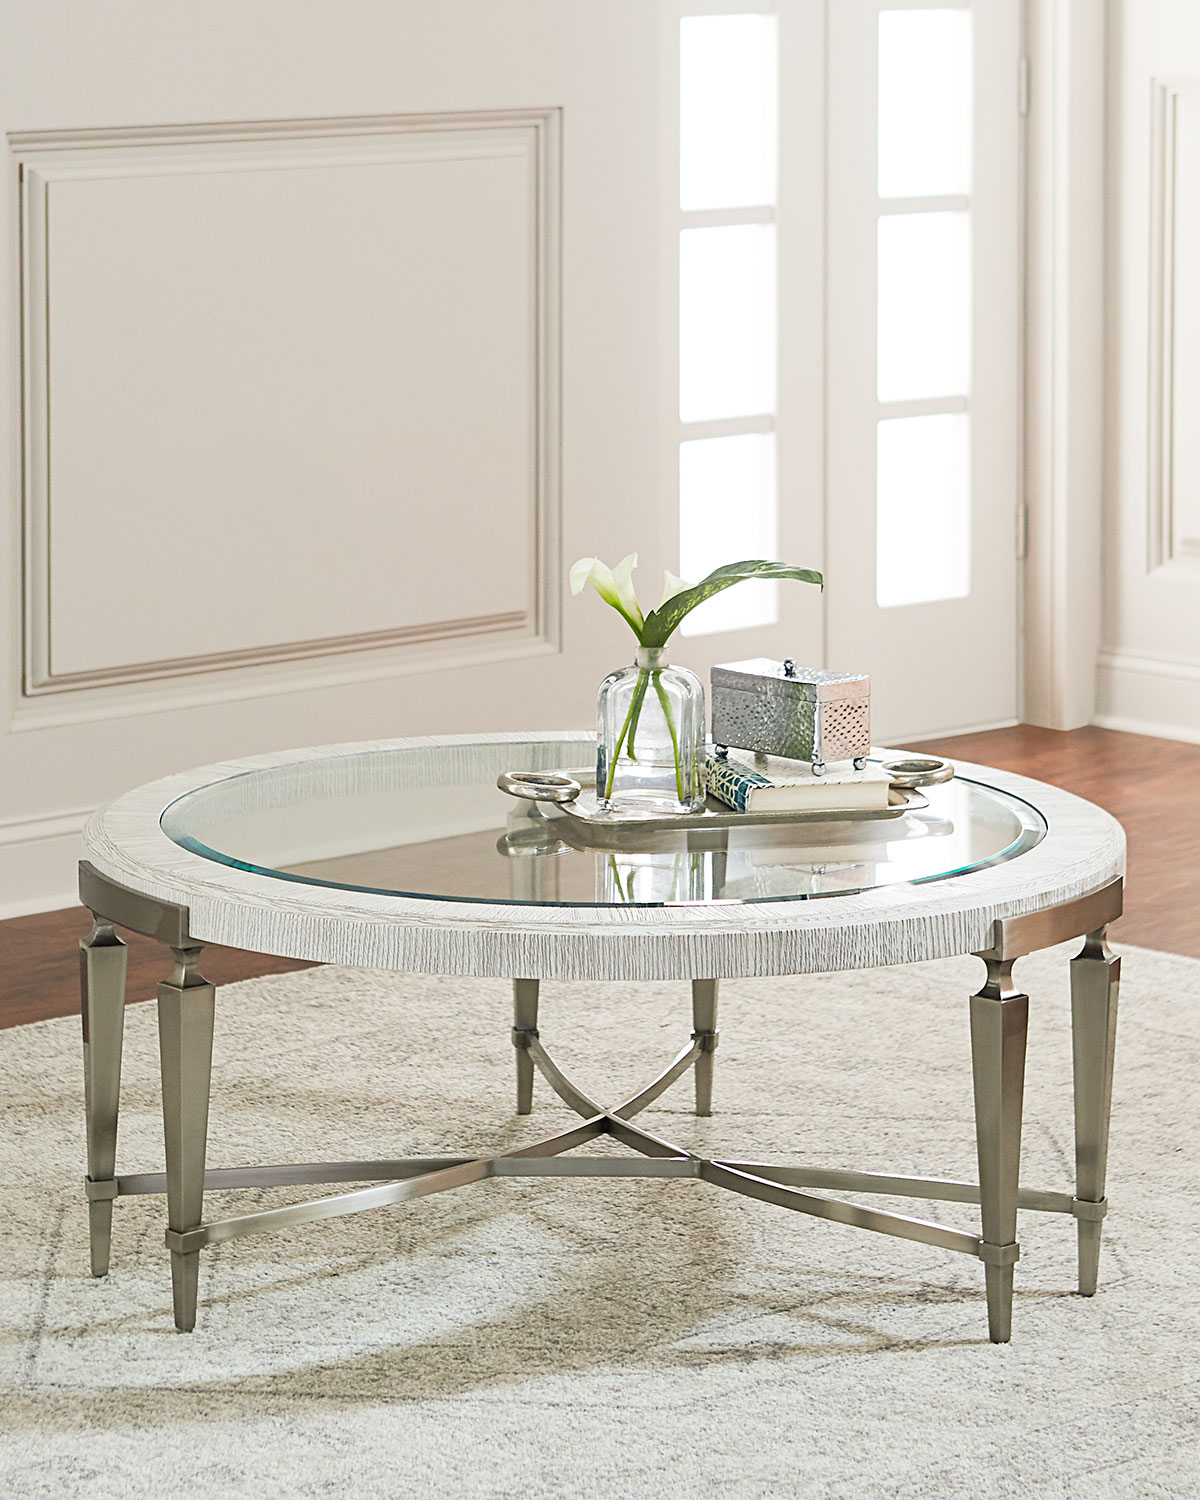 Black Oak Round Coffee Table: Bernhardt Damonica White Oak Round Coffee Table